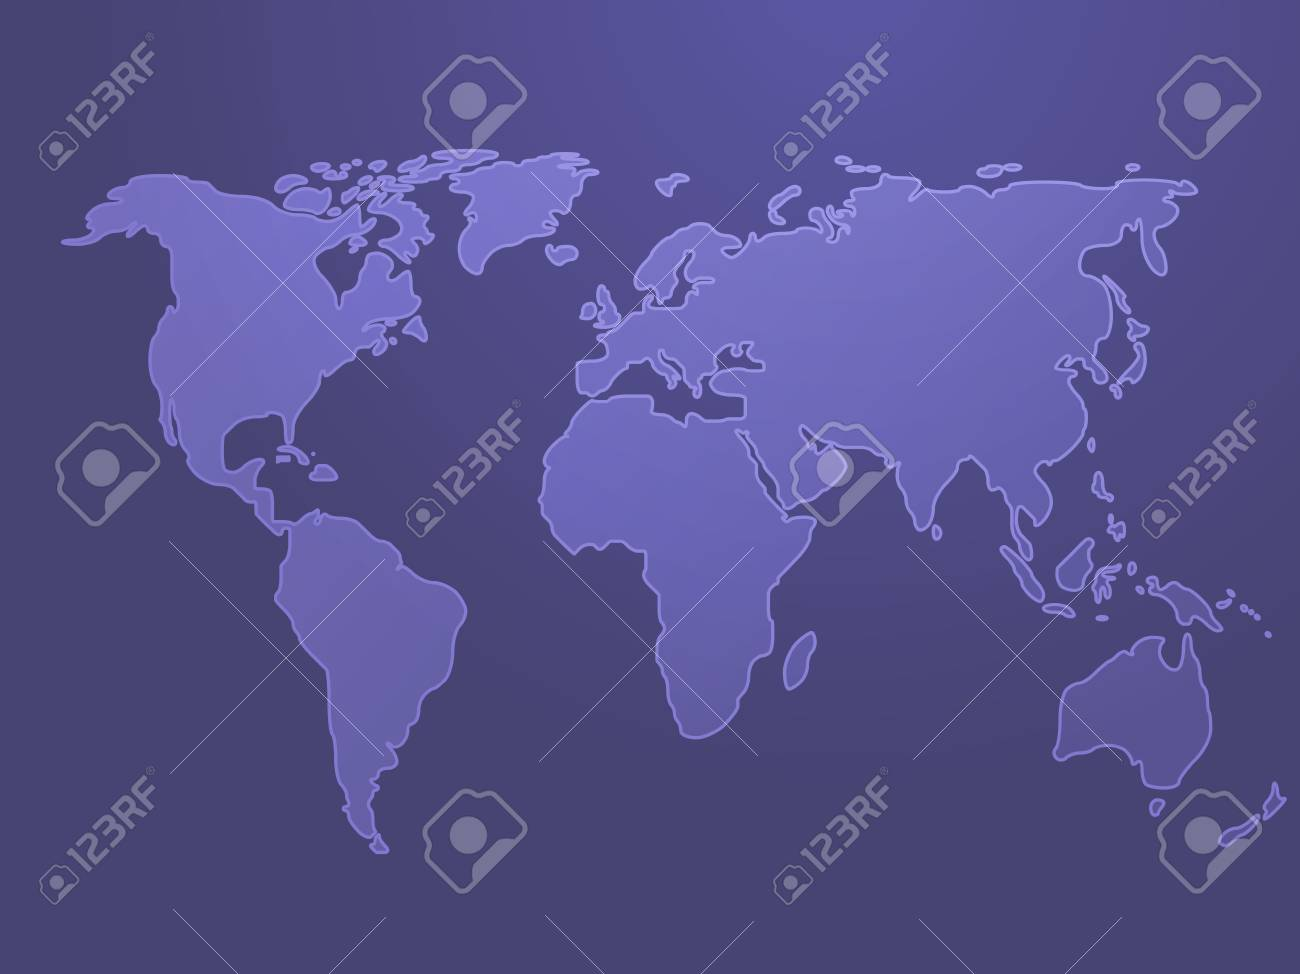 Map of the world illustration, simple outline on gradient color Stock Photo - 4551347